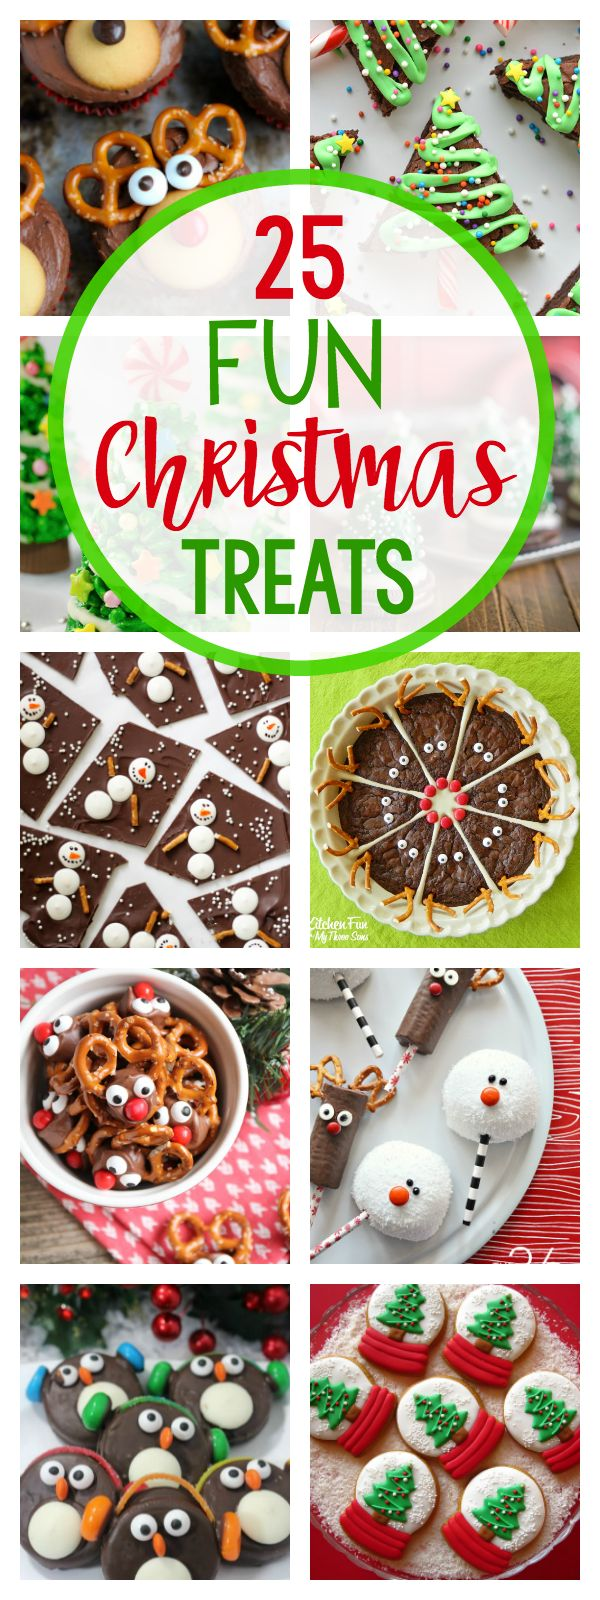 25 Fun Christmas Treats. You know that when Christmas time rolls around there are a million treats that you want to bake, eat, buy and share with friends and family right? How do you even decide what to make or eat? We thought it would be great to have a roundup of treats that are not only yummy, but cute and fun too, sure to put a smile on your face! Here's 25 FUN Christmas Treats for you!